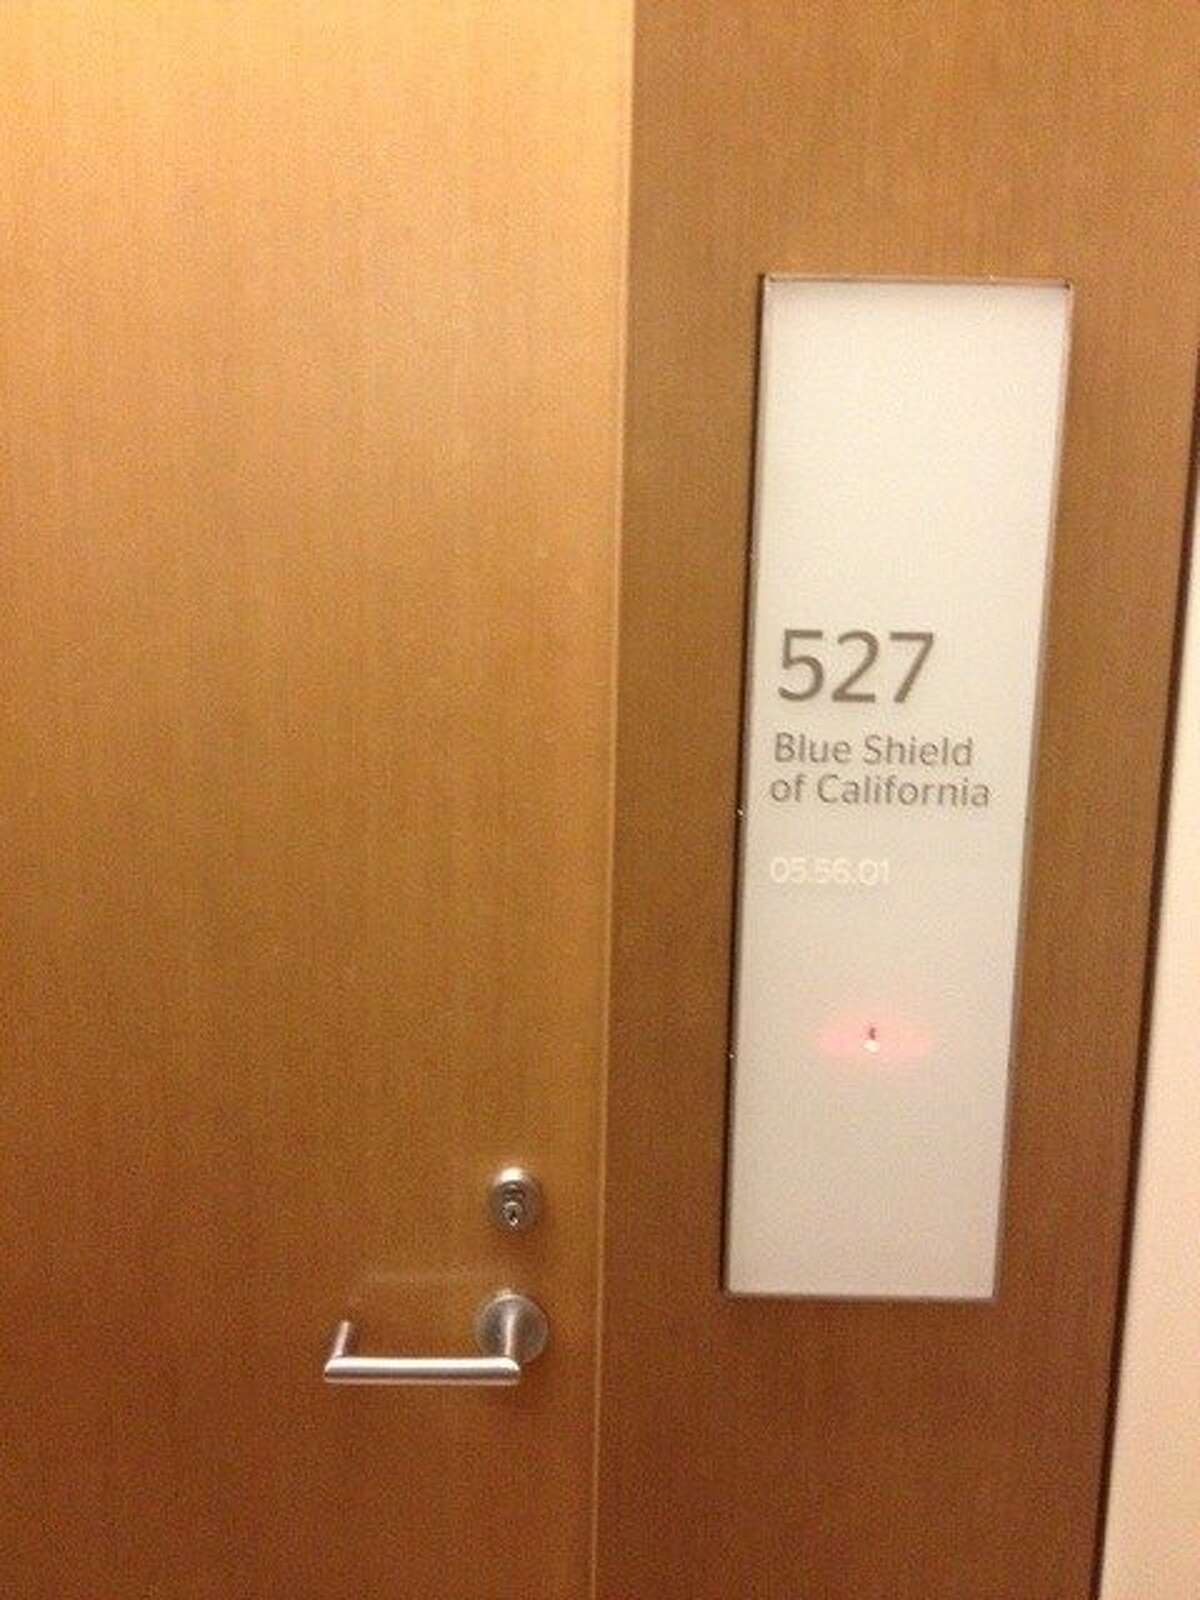 Door to new 49ers luxury suite at Levi's Stadium purchased for millions by Blue Shield of California